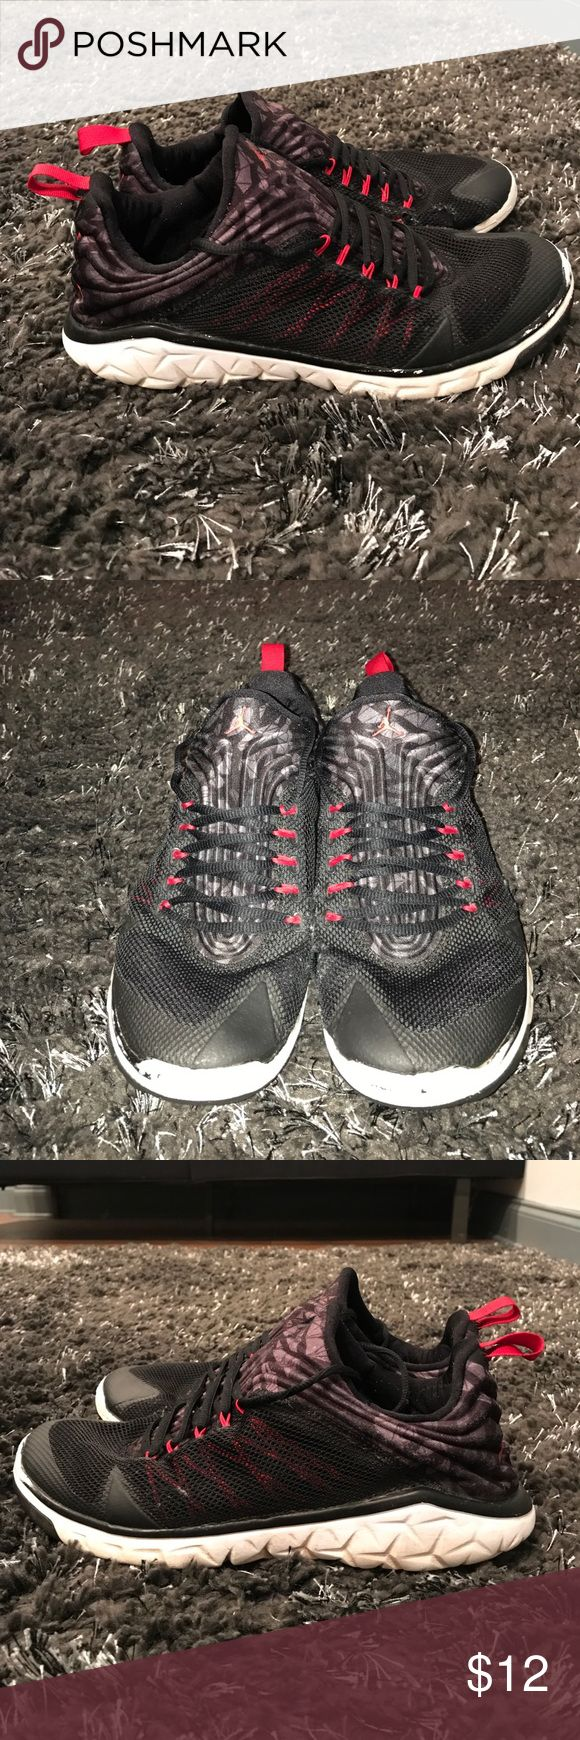 Jordan Flight Flex Black scuffed off, hole on left shoe near toe (all damages are pictures) Jordan Shoes Sneakers